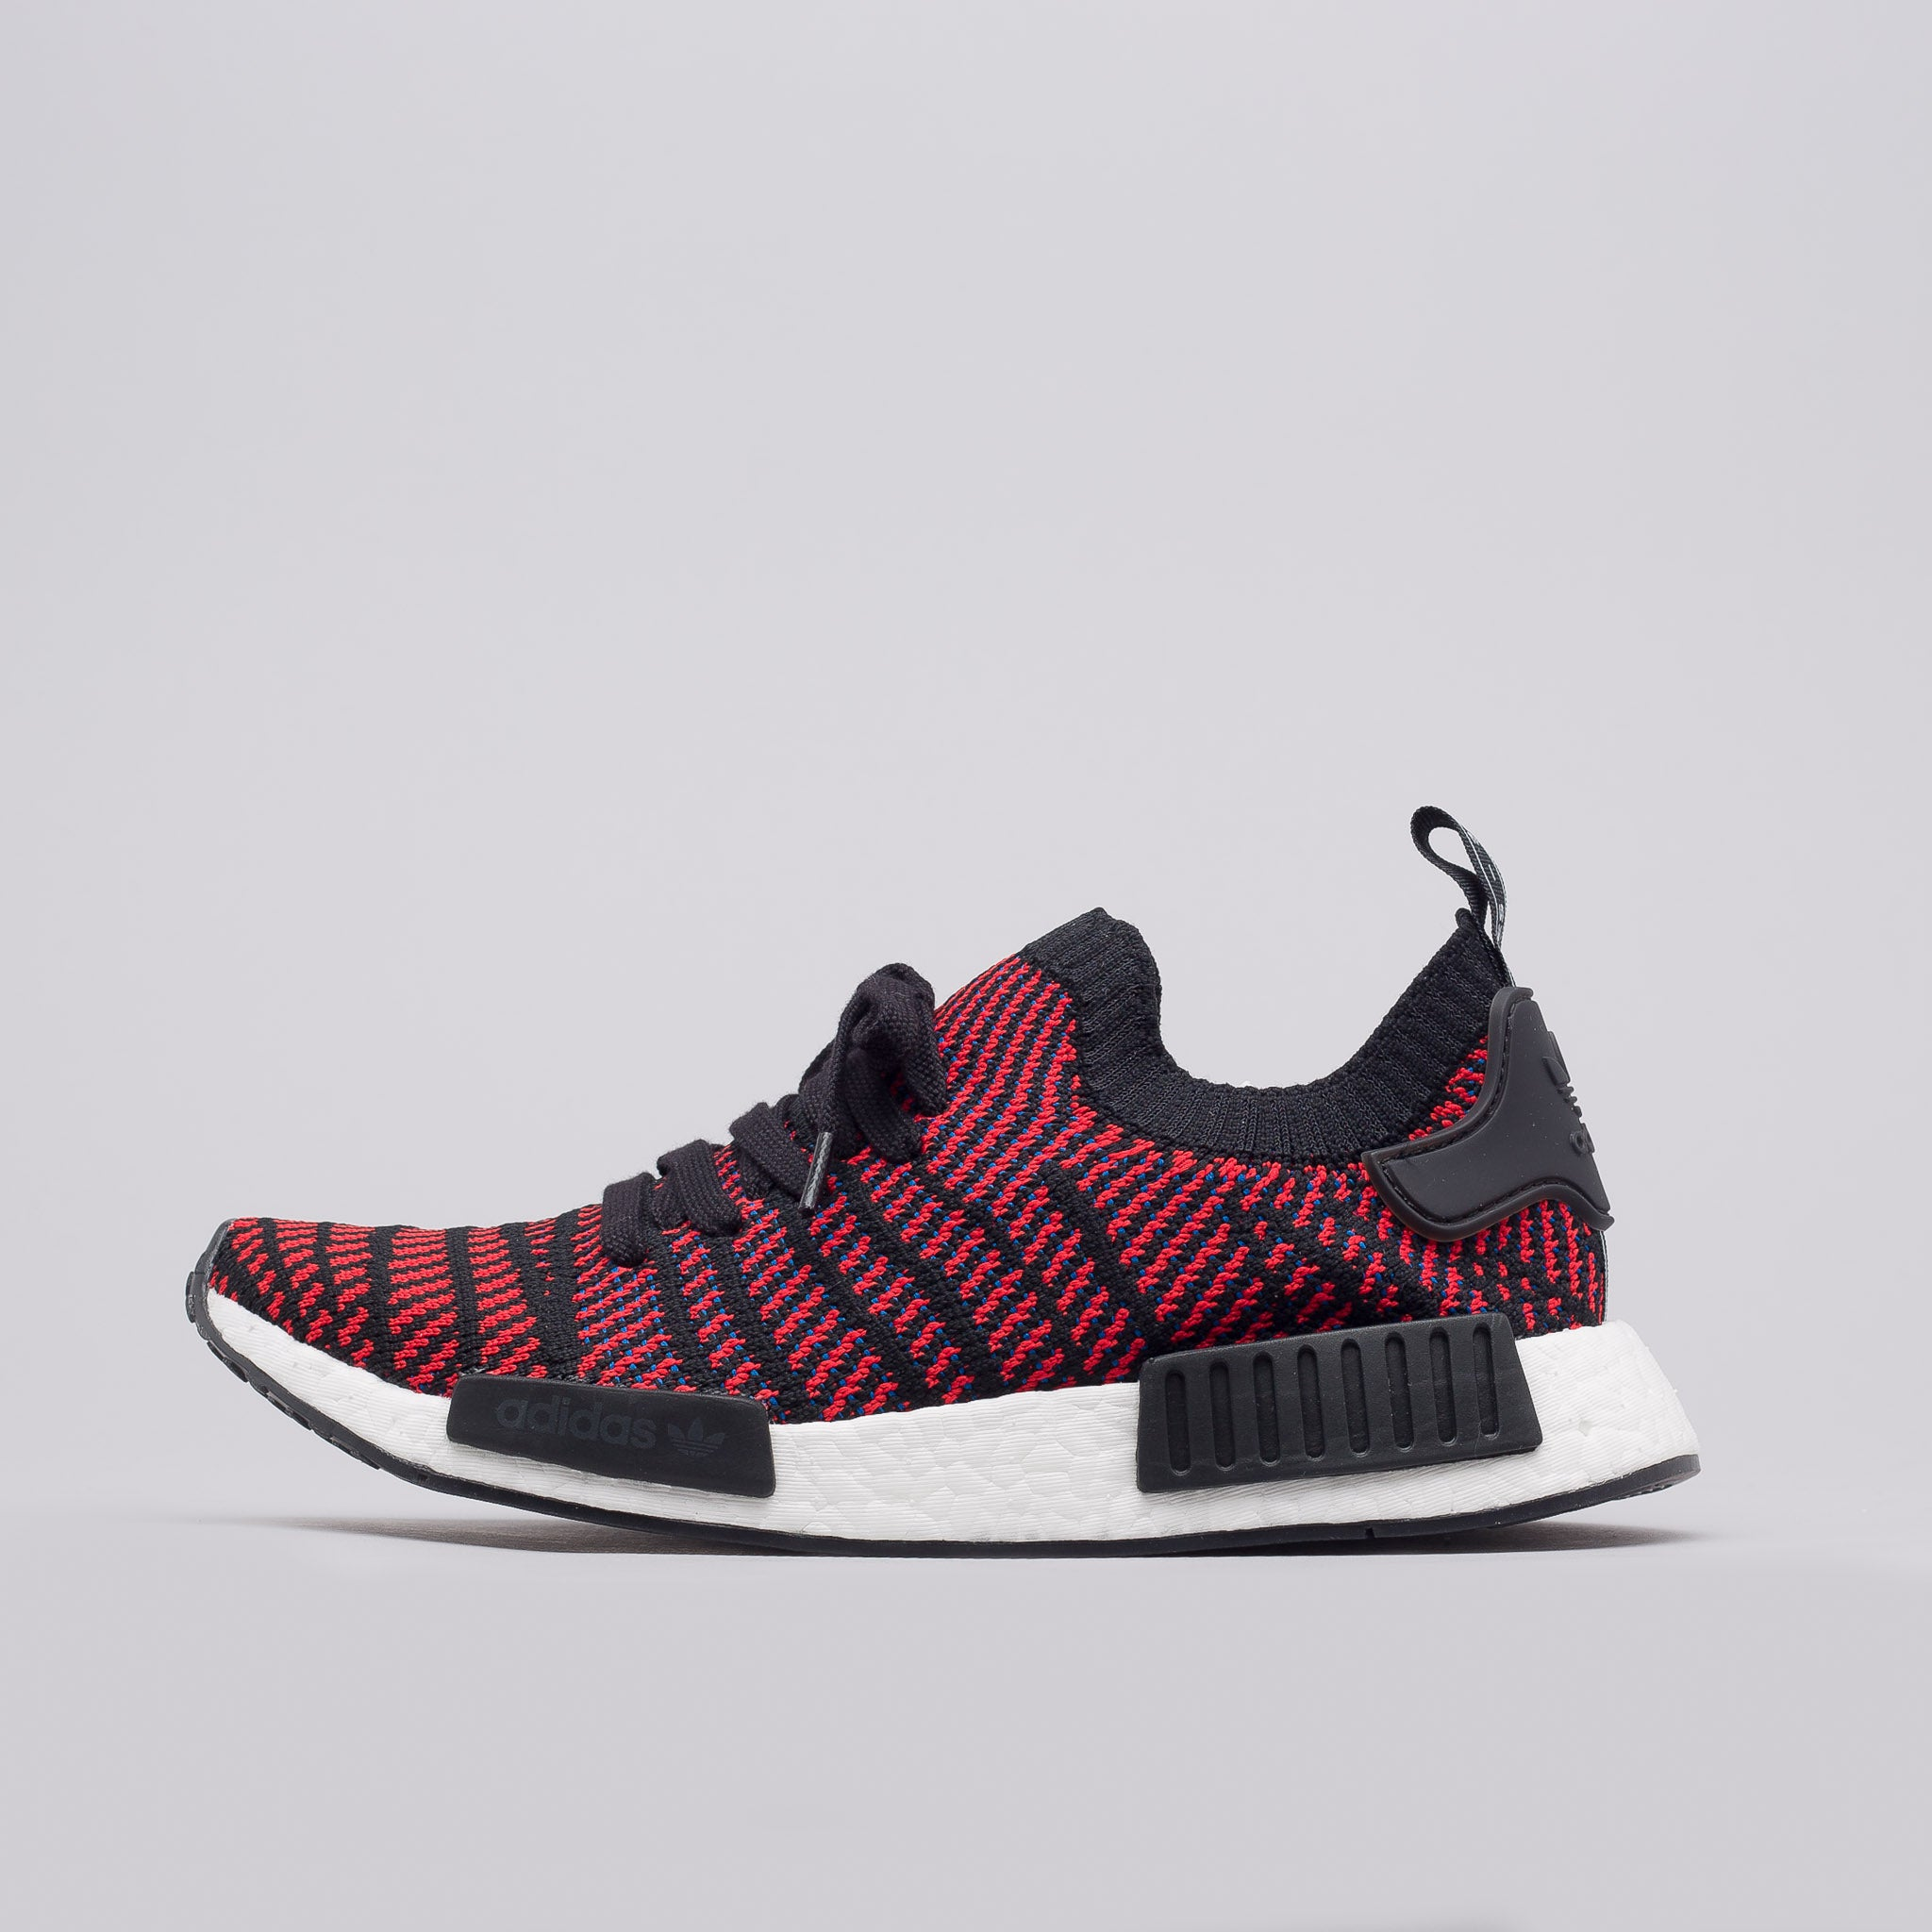 Adidas NMD R1 W S76006 Raw Pink Rose Salmon Peach 5 5.5 8.5